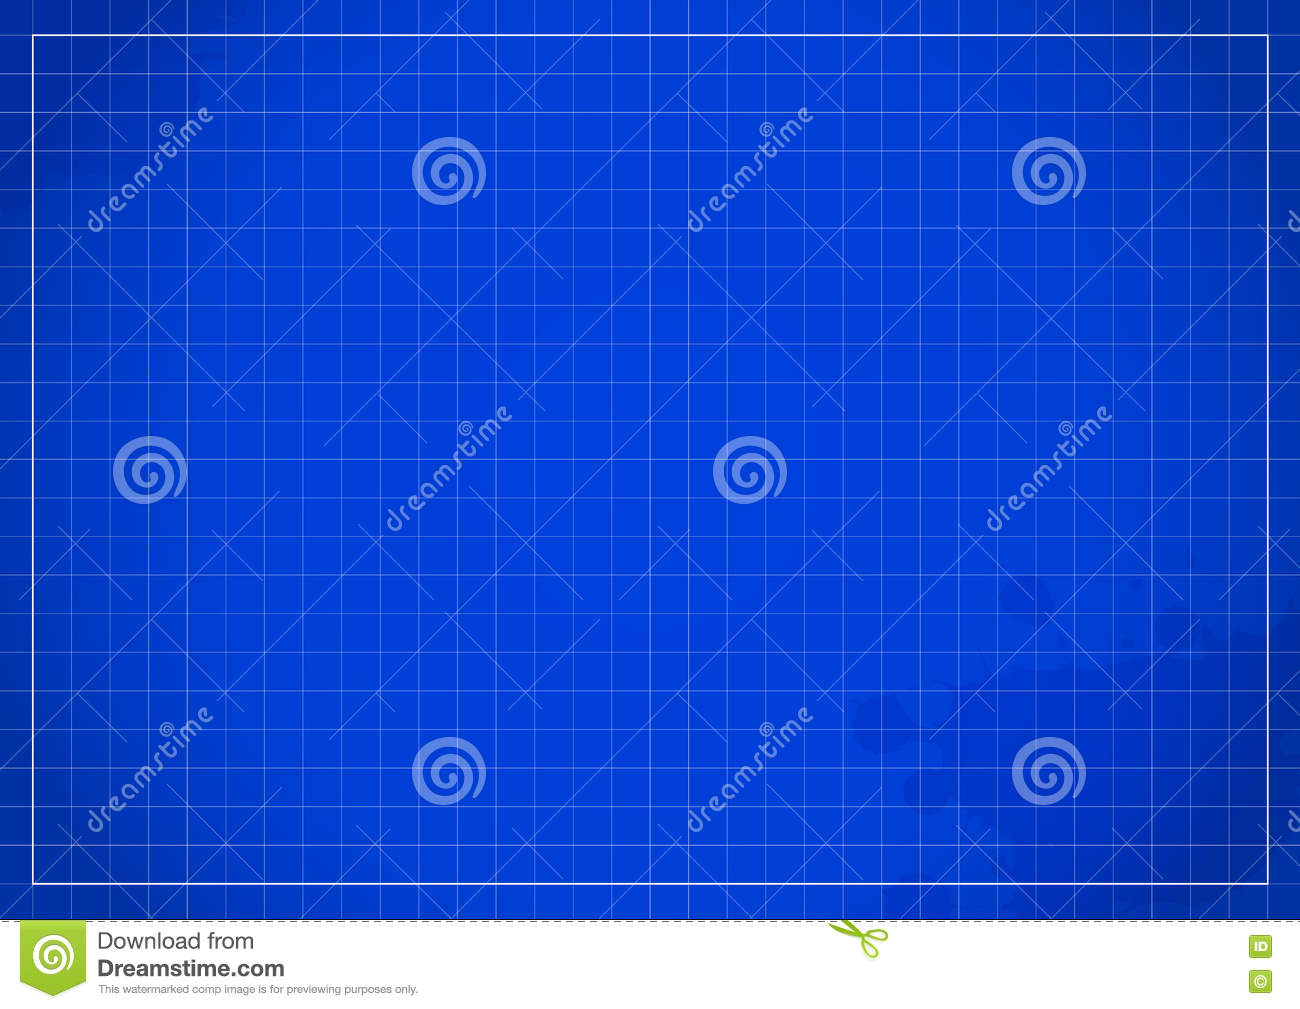 Blueprint background vector illustration stock vector blueprint background vector illustration malvernweather Images